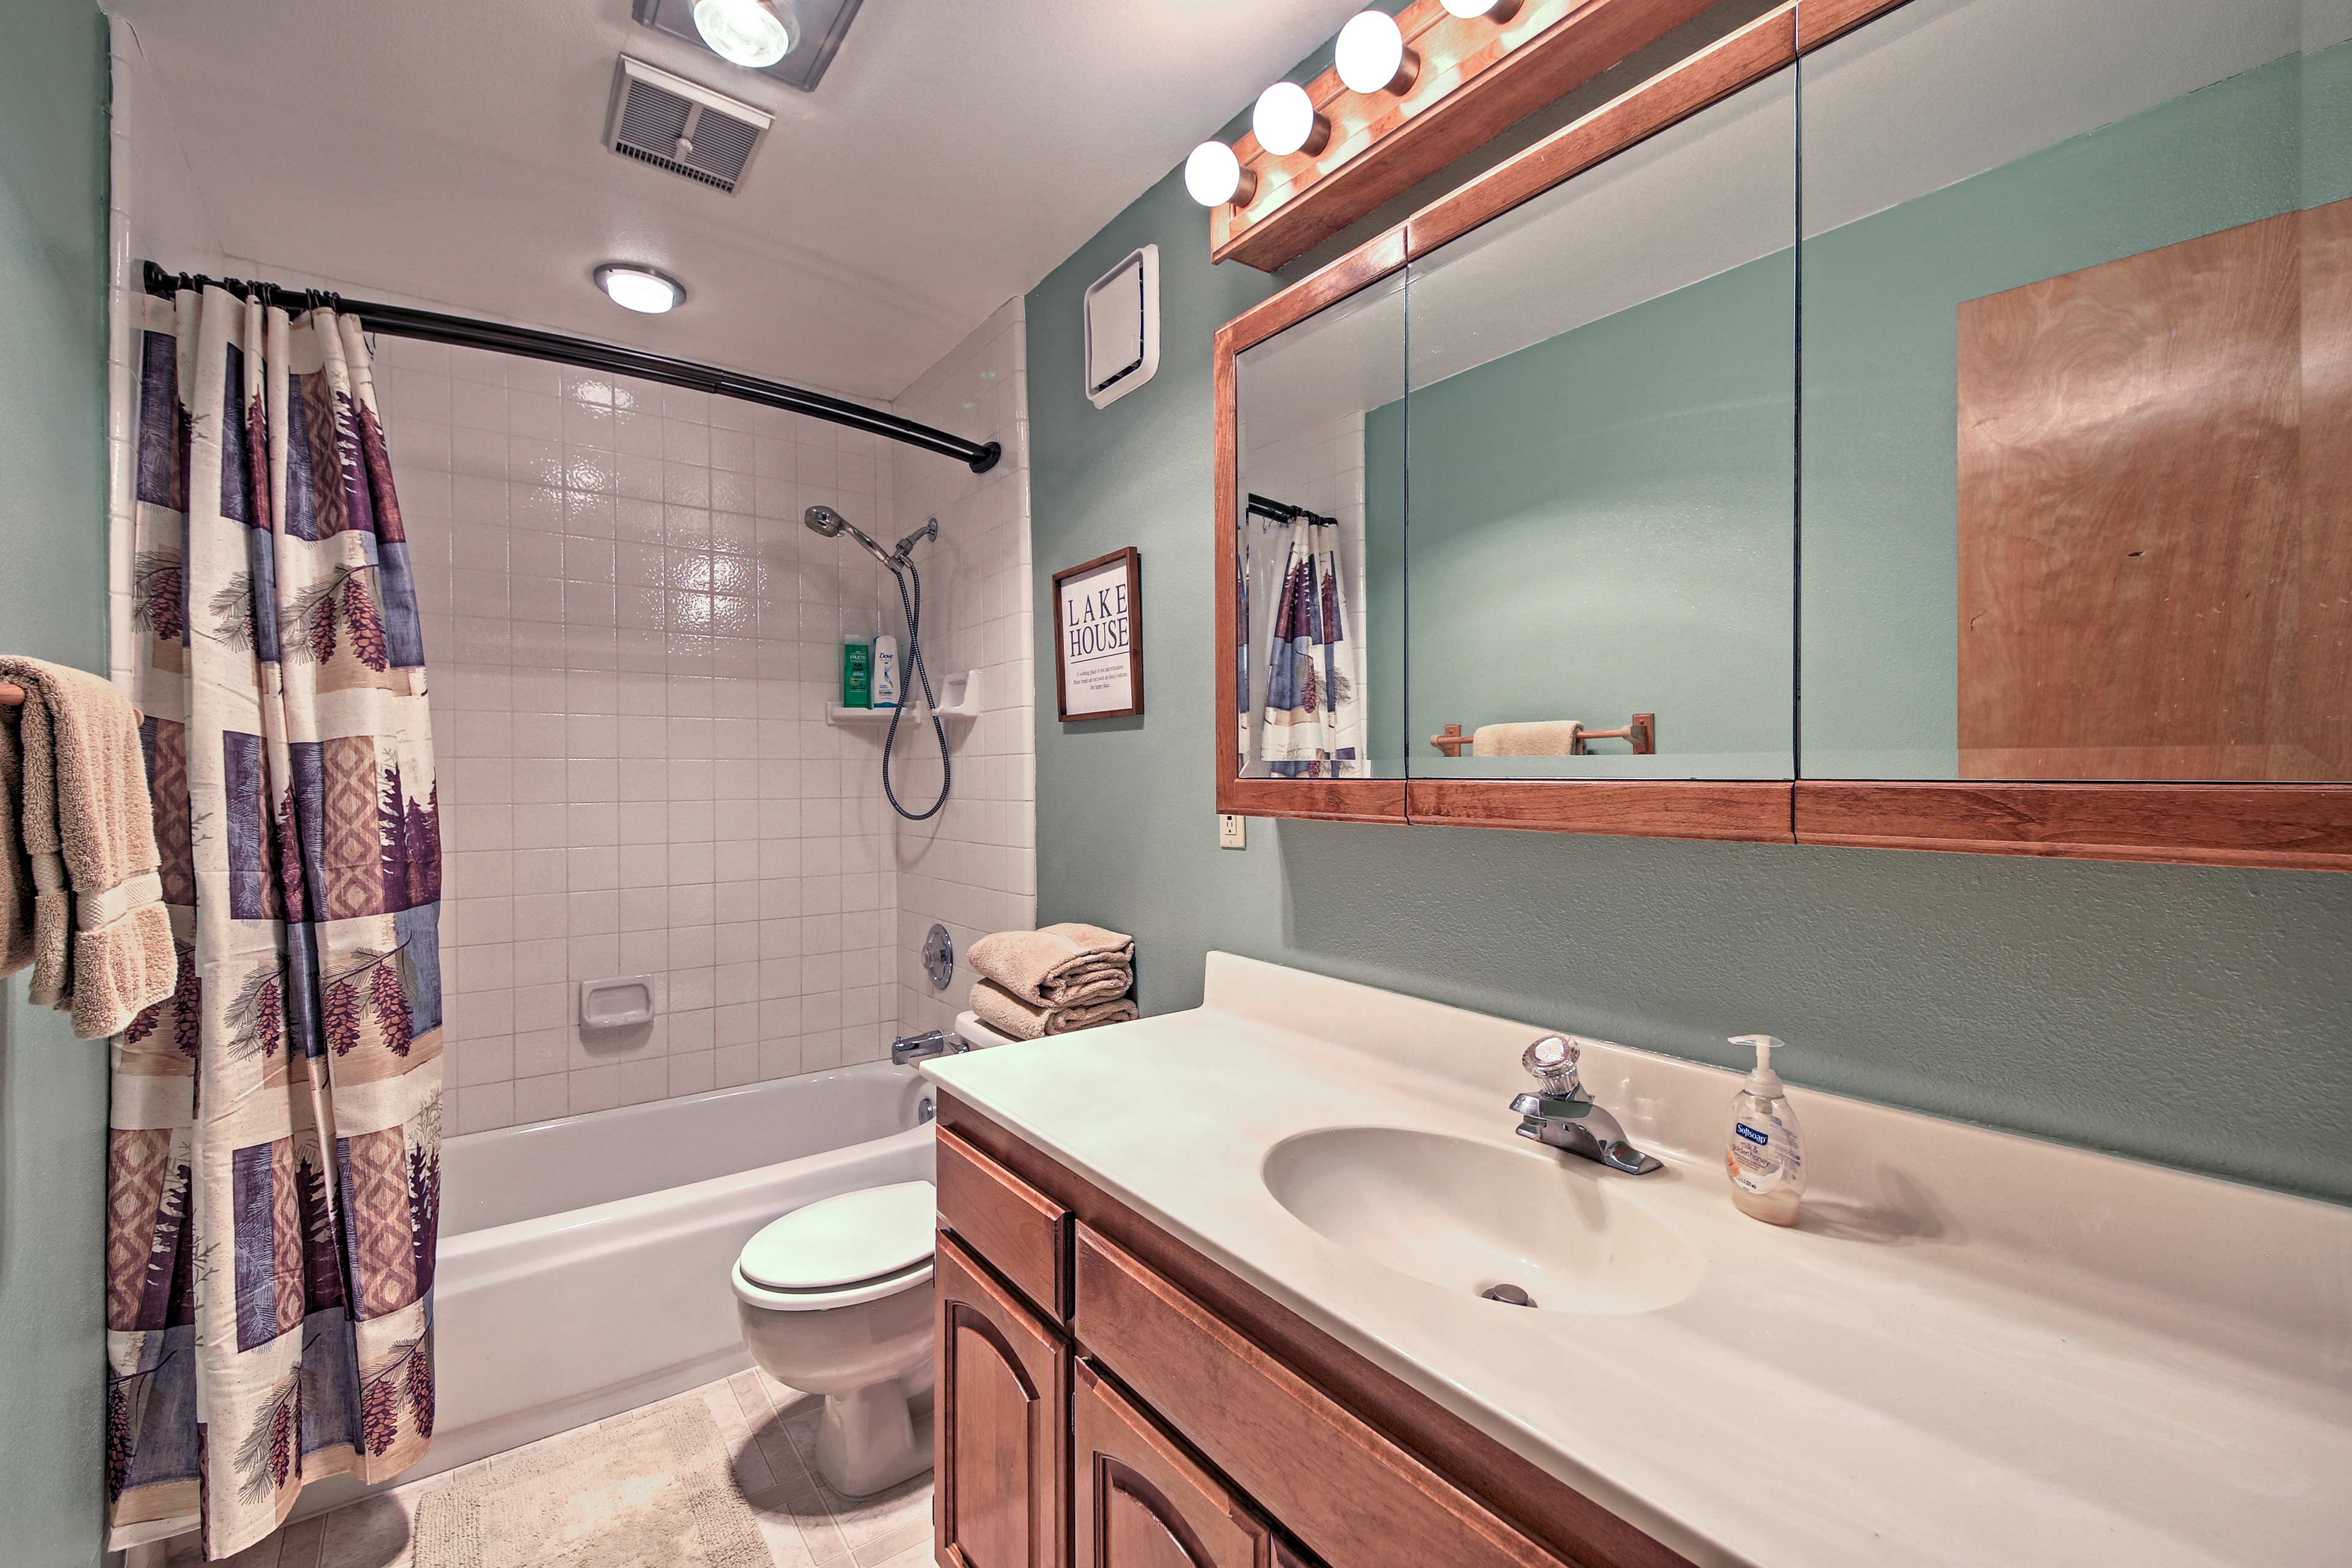 The third full bathroom hosts a shower/tub combo and large vanity.